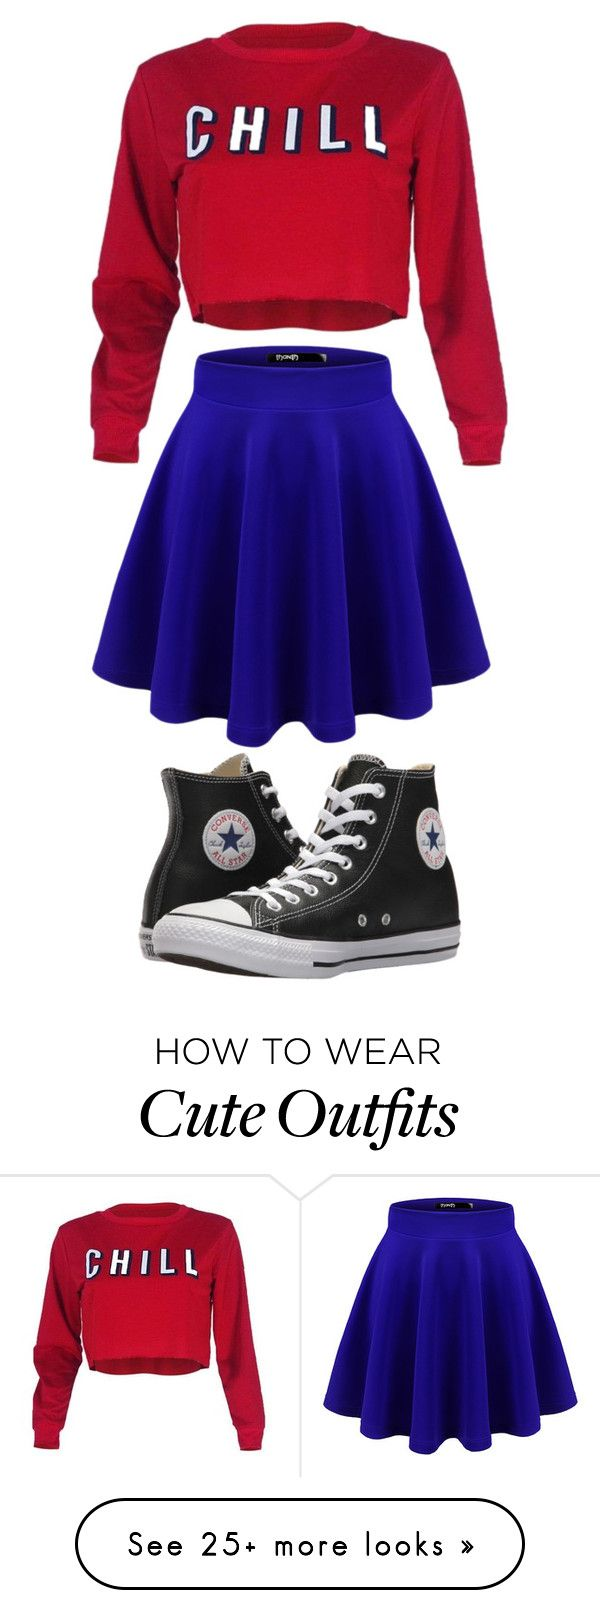 """Cute outfit"" by parulsingla on Polyvore featuring Doublju, Converse, parisfashionweek and Packandgo"